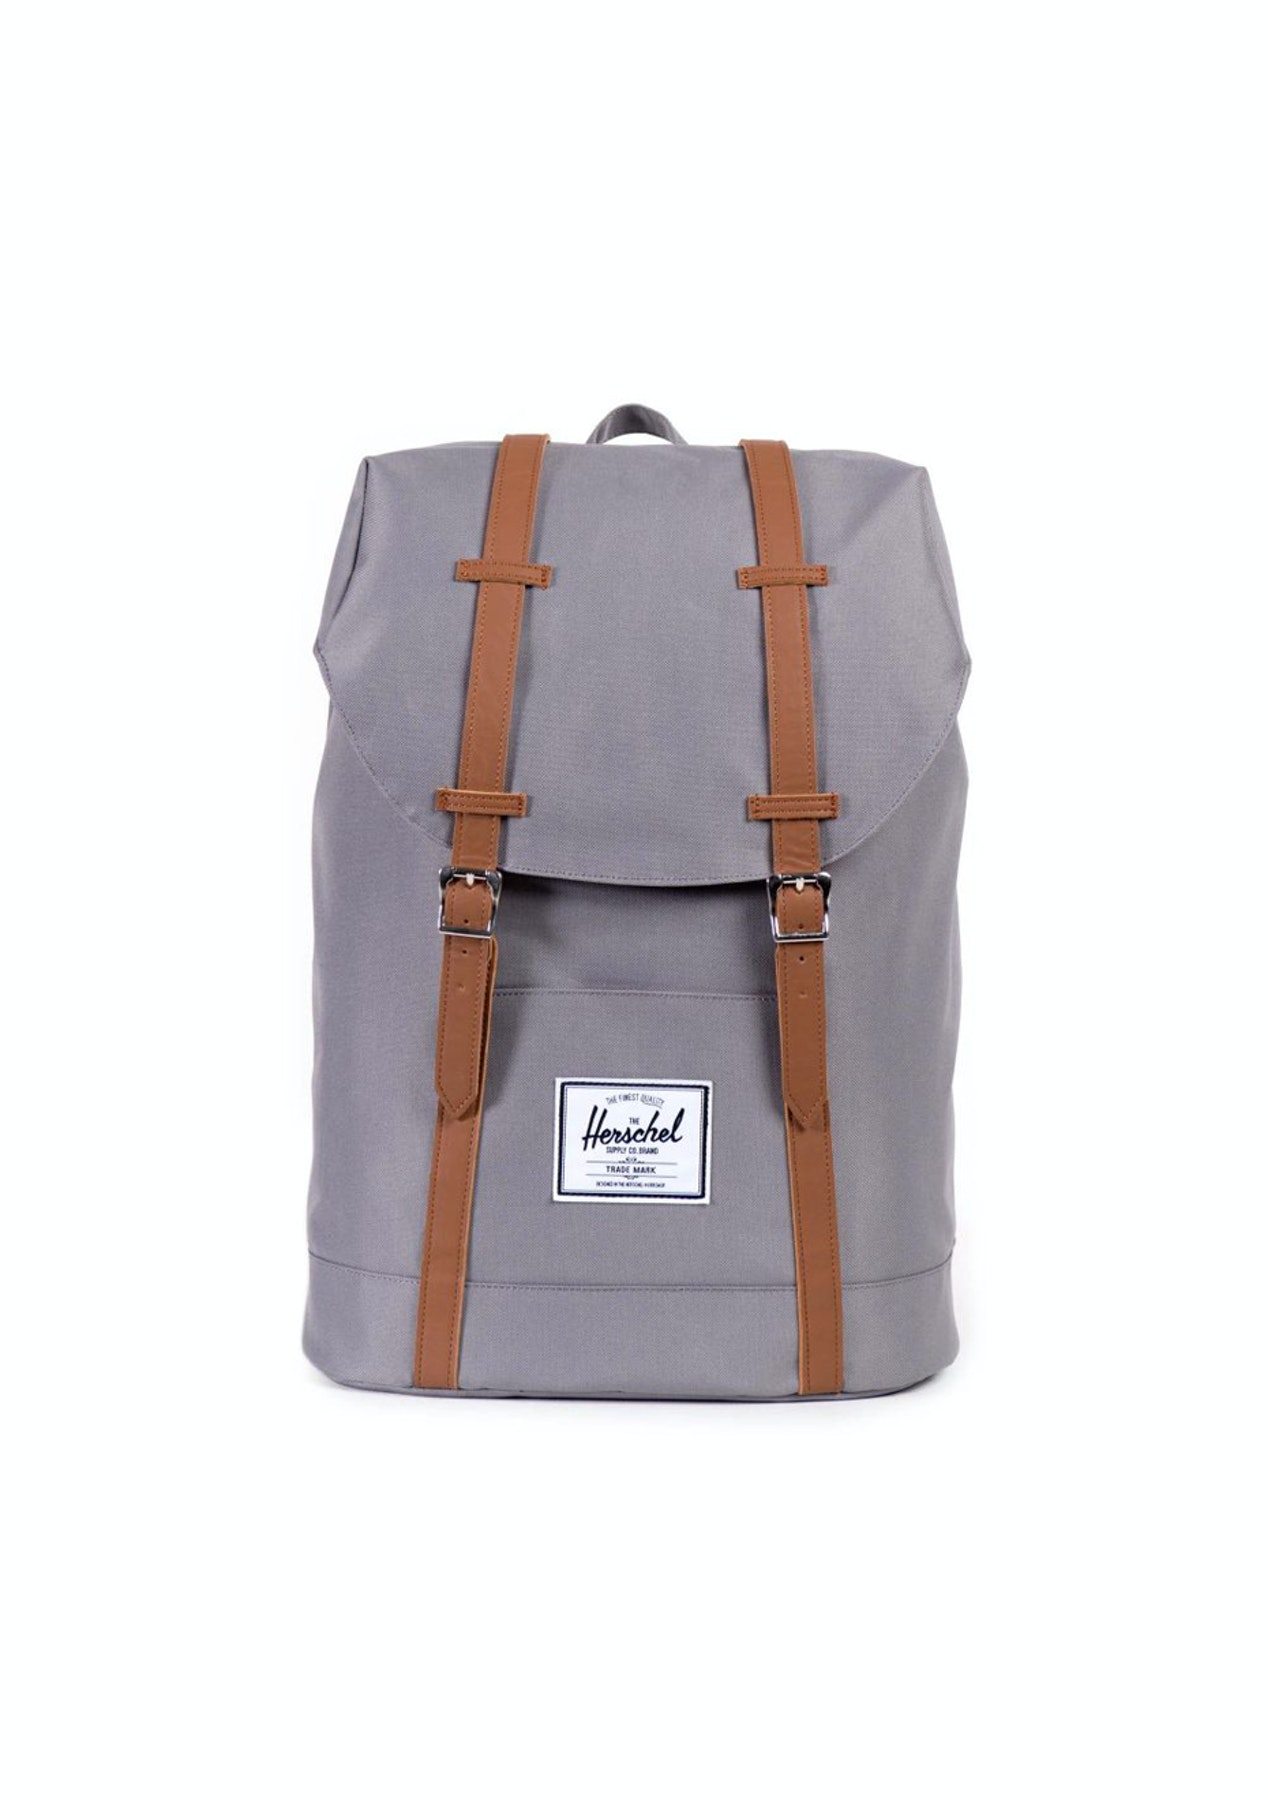 Herschel - Retreat Backpack - Grey Tan Synthetic Leather - Back Pack  Clearance - Onceit 65320fe475a82